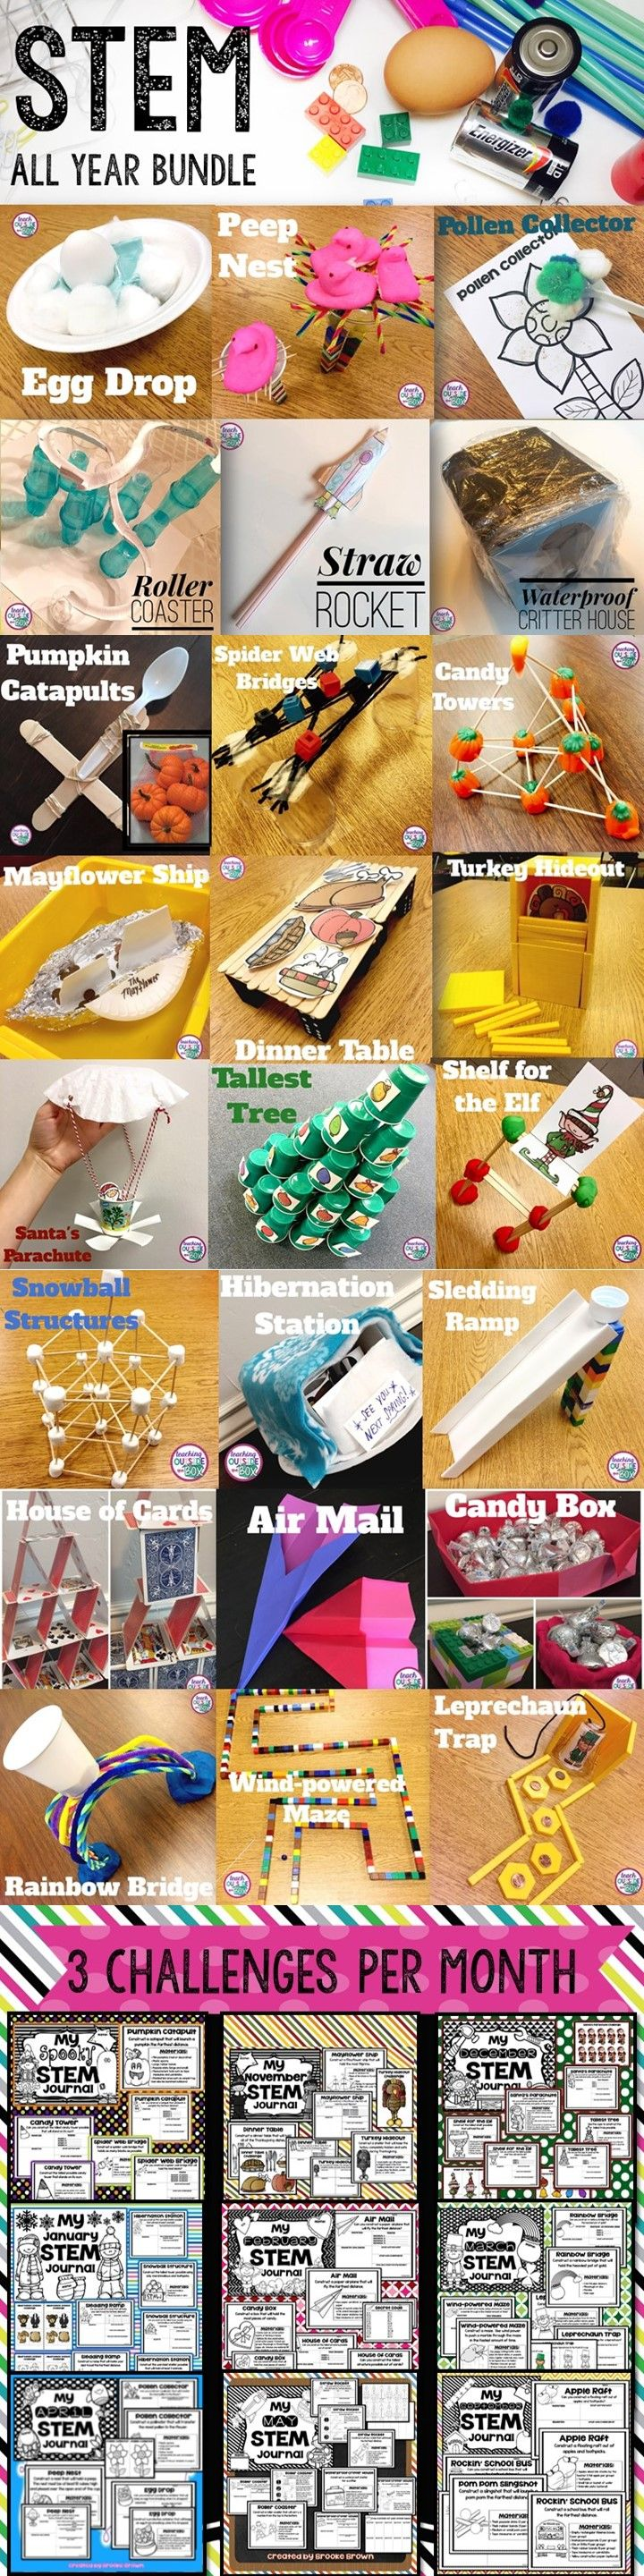 Have you tried a STEM Challenge yet? Let me make it easy on you with STEM Challenges for the ENTIRE YEAR for Elementary Students! 3 Engaging activities with detailed lesson plans per month!